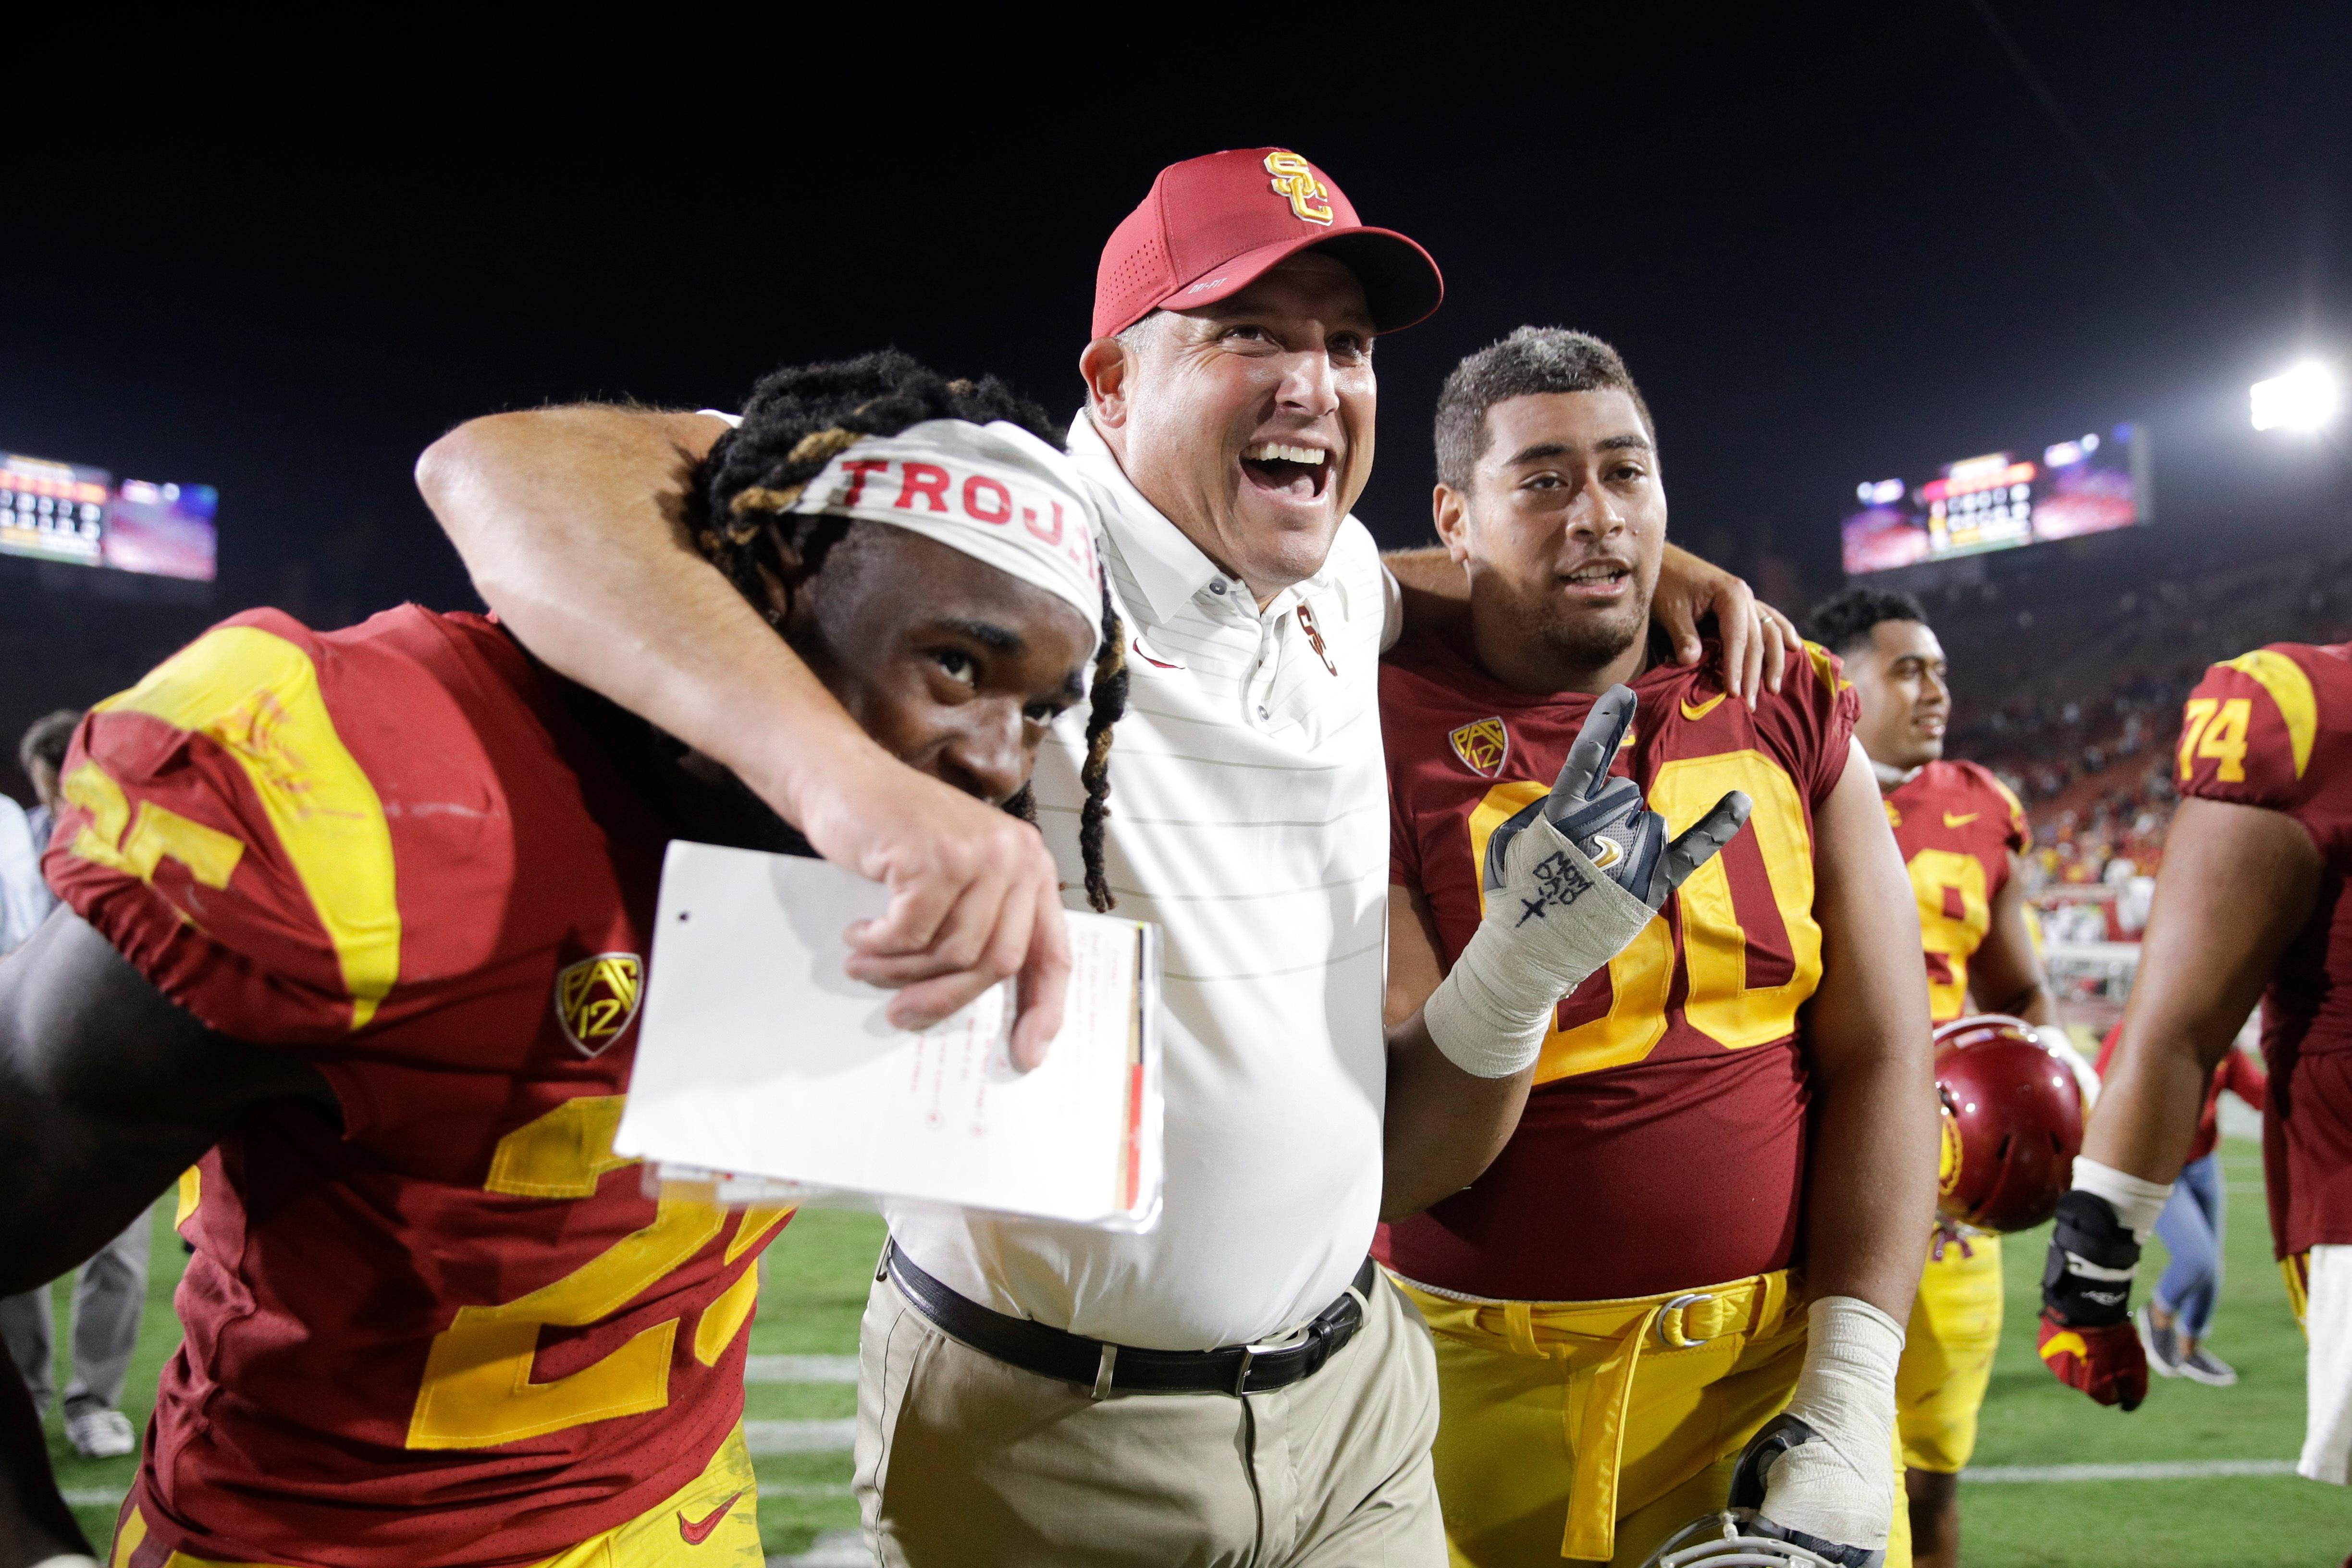 FILE - In this Sept. 9, 2017, file photo, Southern California coach Clay Helton, center, Ronald Jones II, left, and Viane Talamaivao celebrate the team's 42-24 win against Stanford, as they walk off the field after an NCAA college football game in Los Angeles. Helton was selected Pac-12 Coach of the Year, Thursday, Dec. 7, 2017. (AP Photo/Jae C. Hong, File)